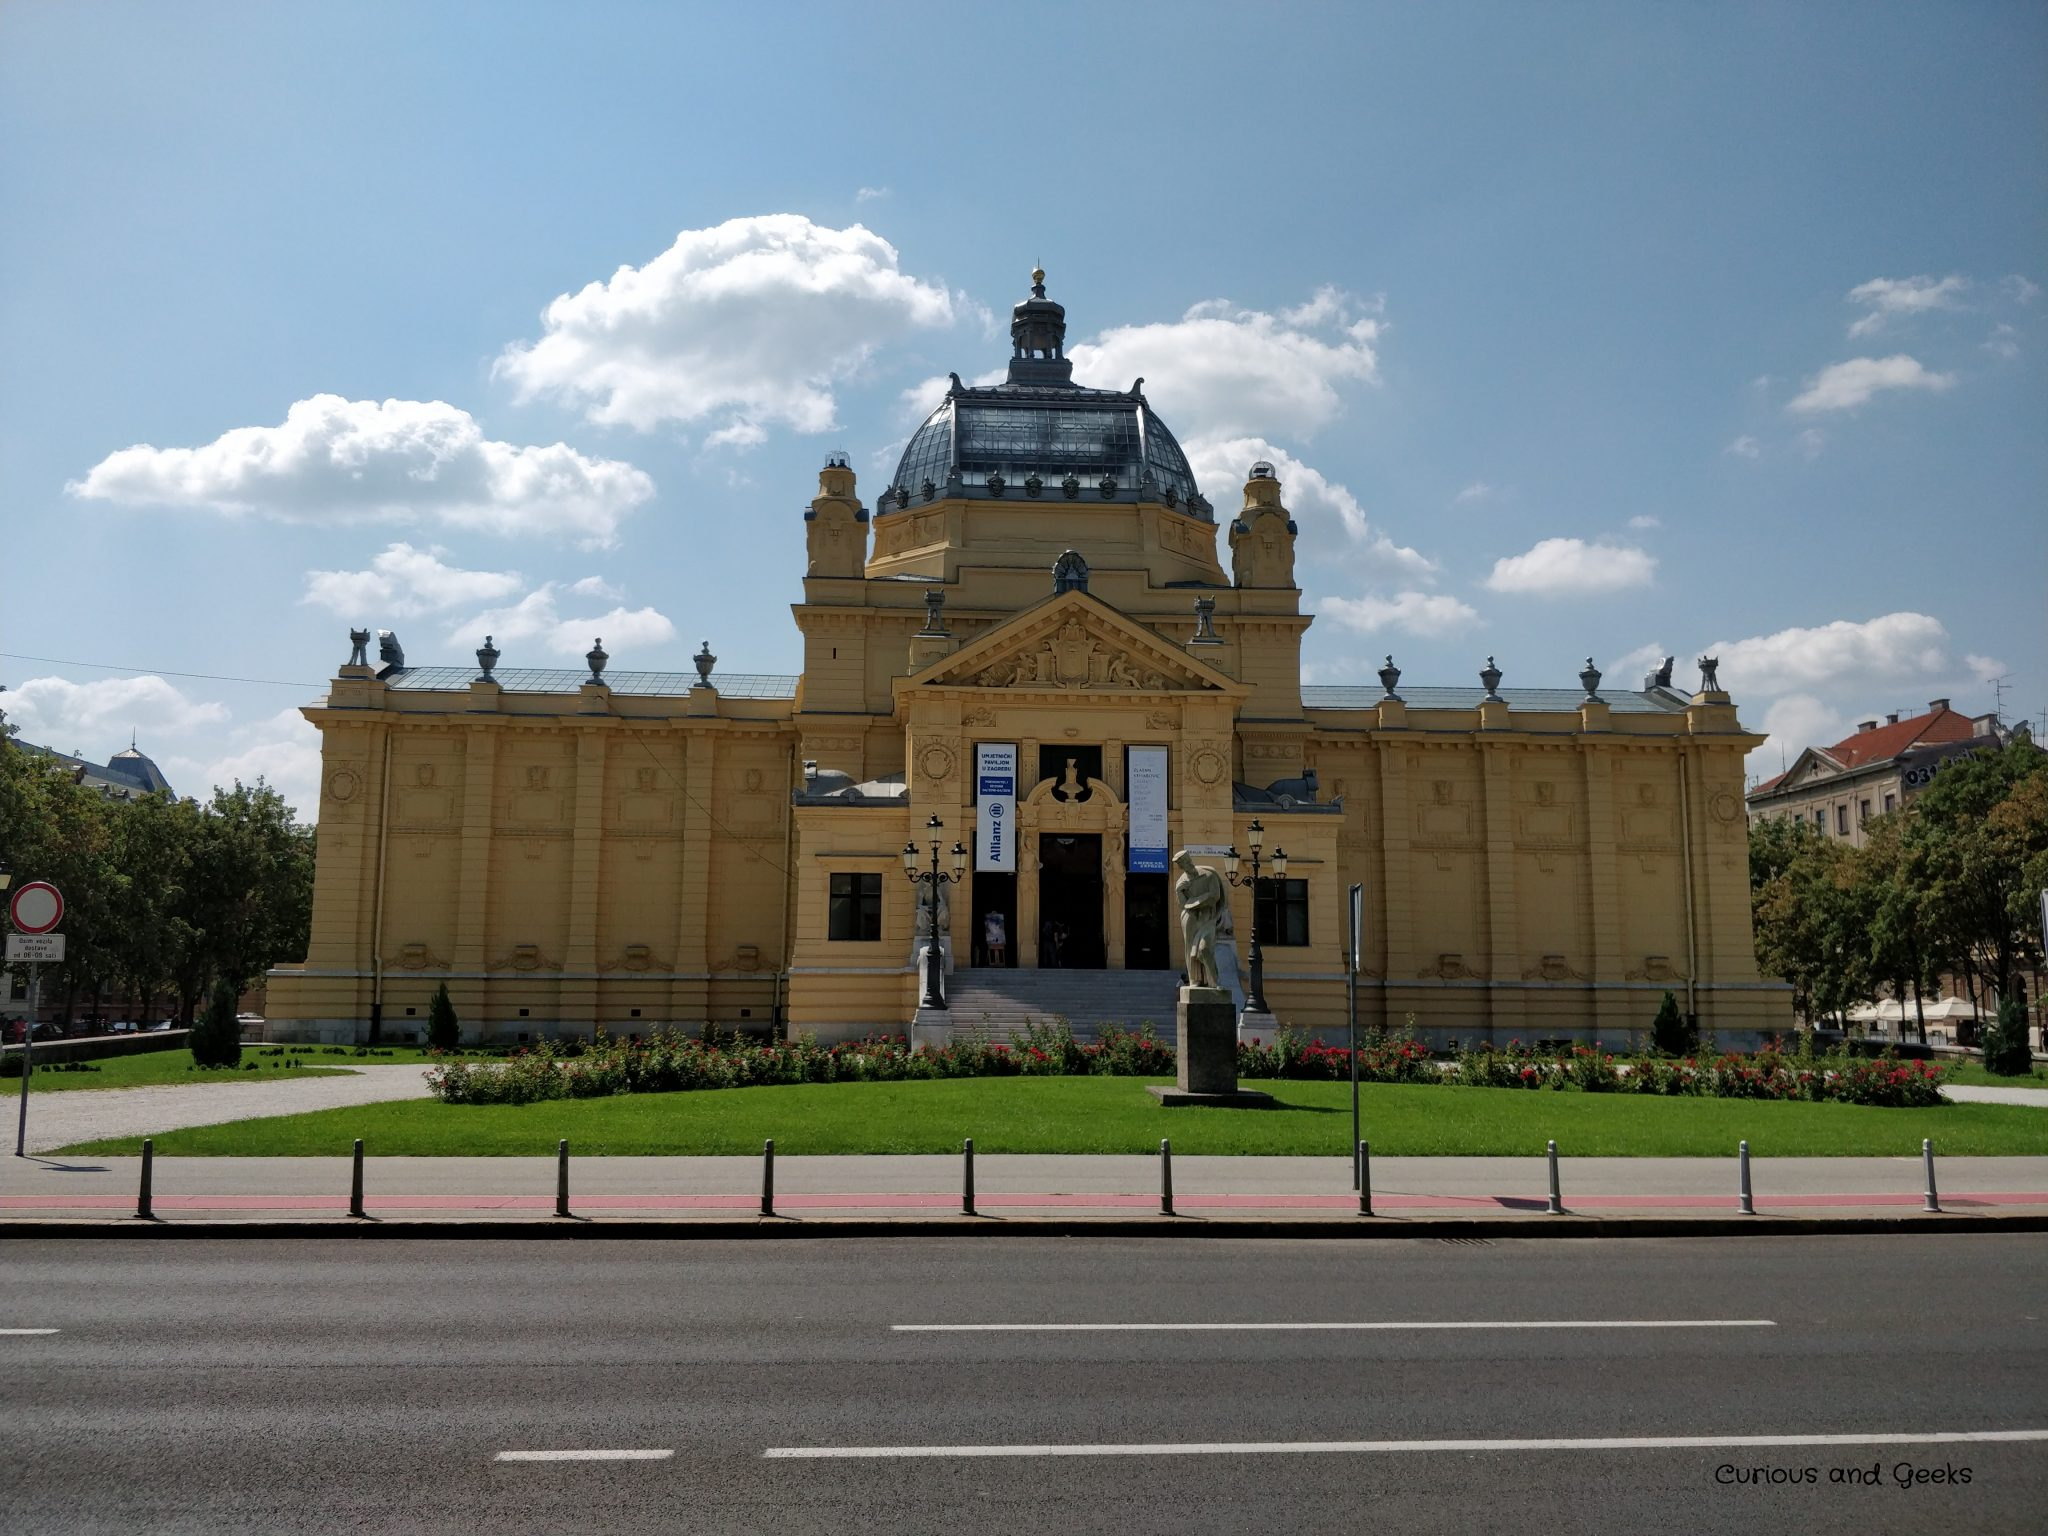 Zagreb - The Art Pavilion, marking the northern end of King Tomislav Square